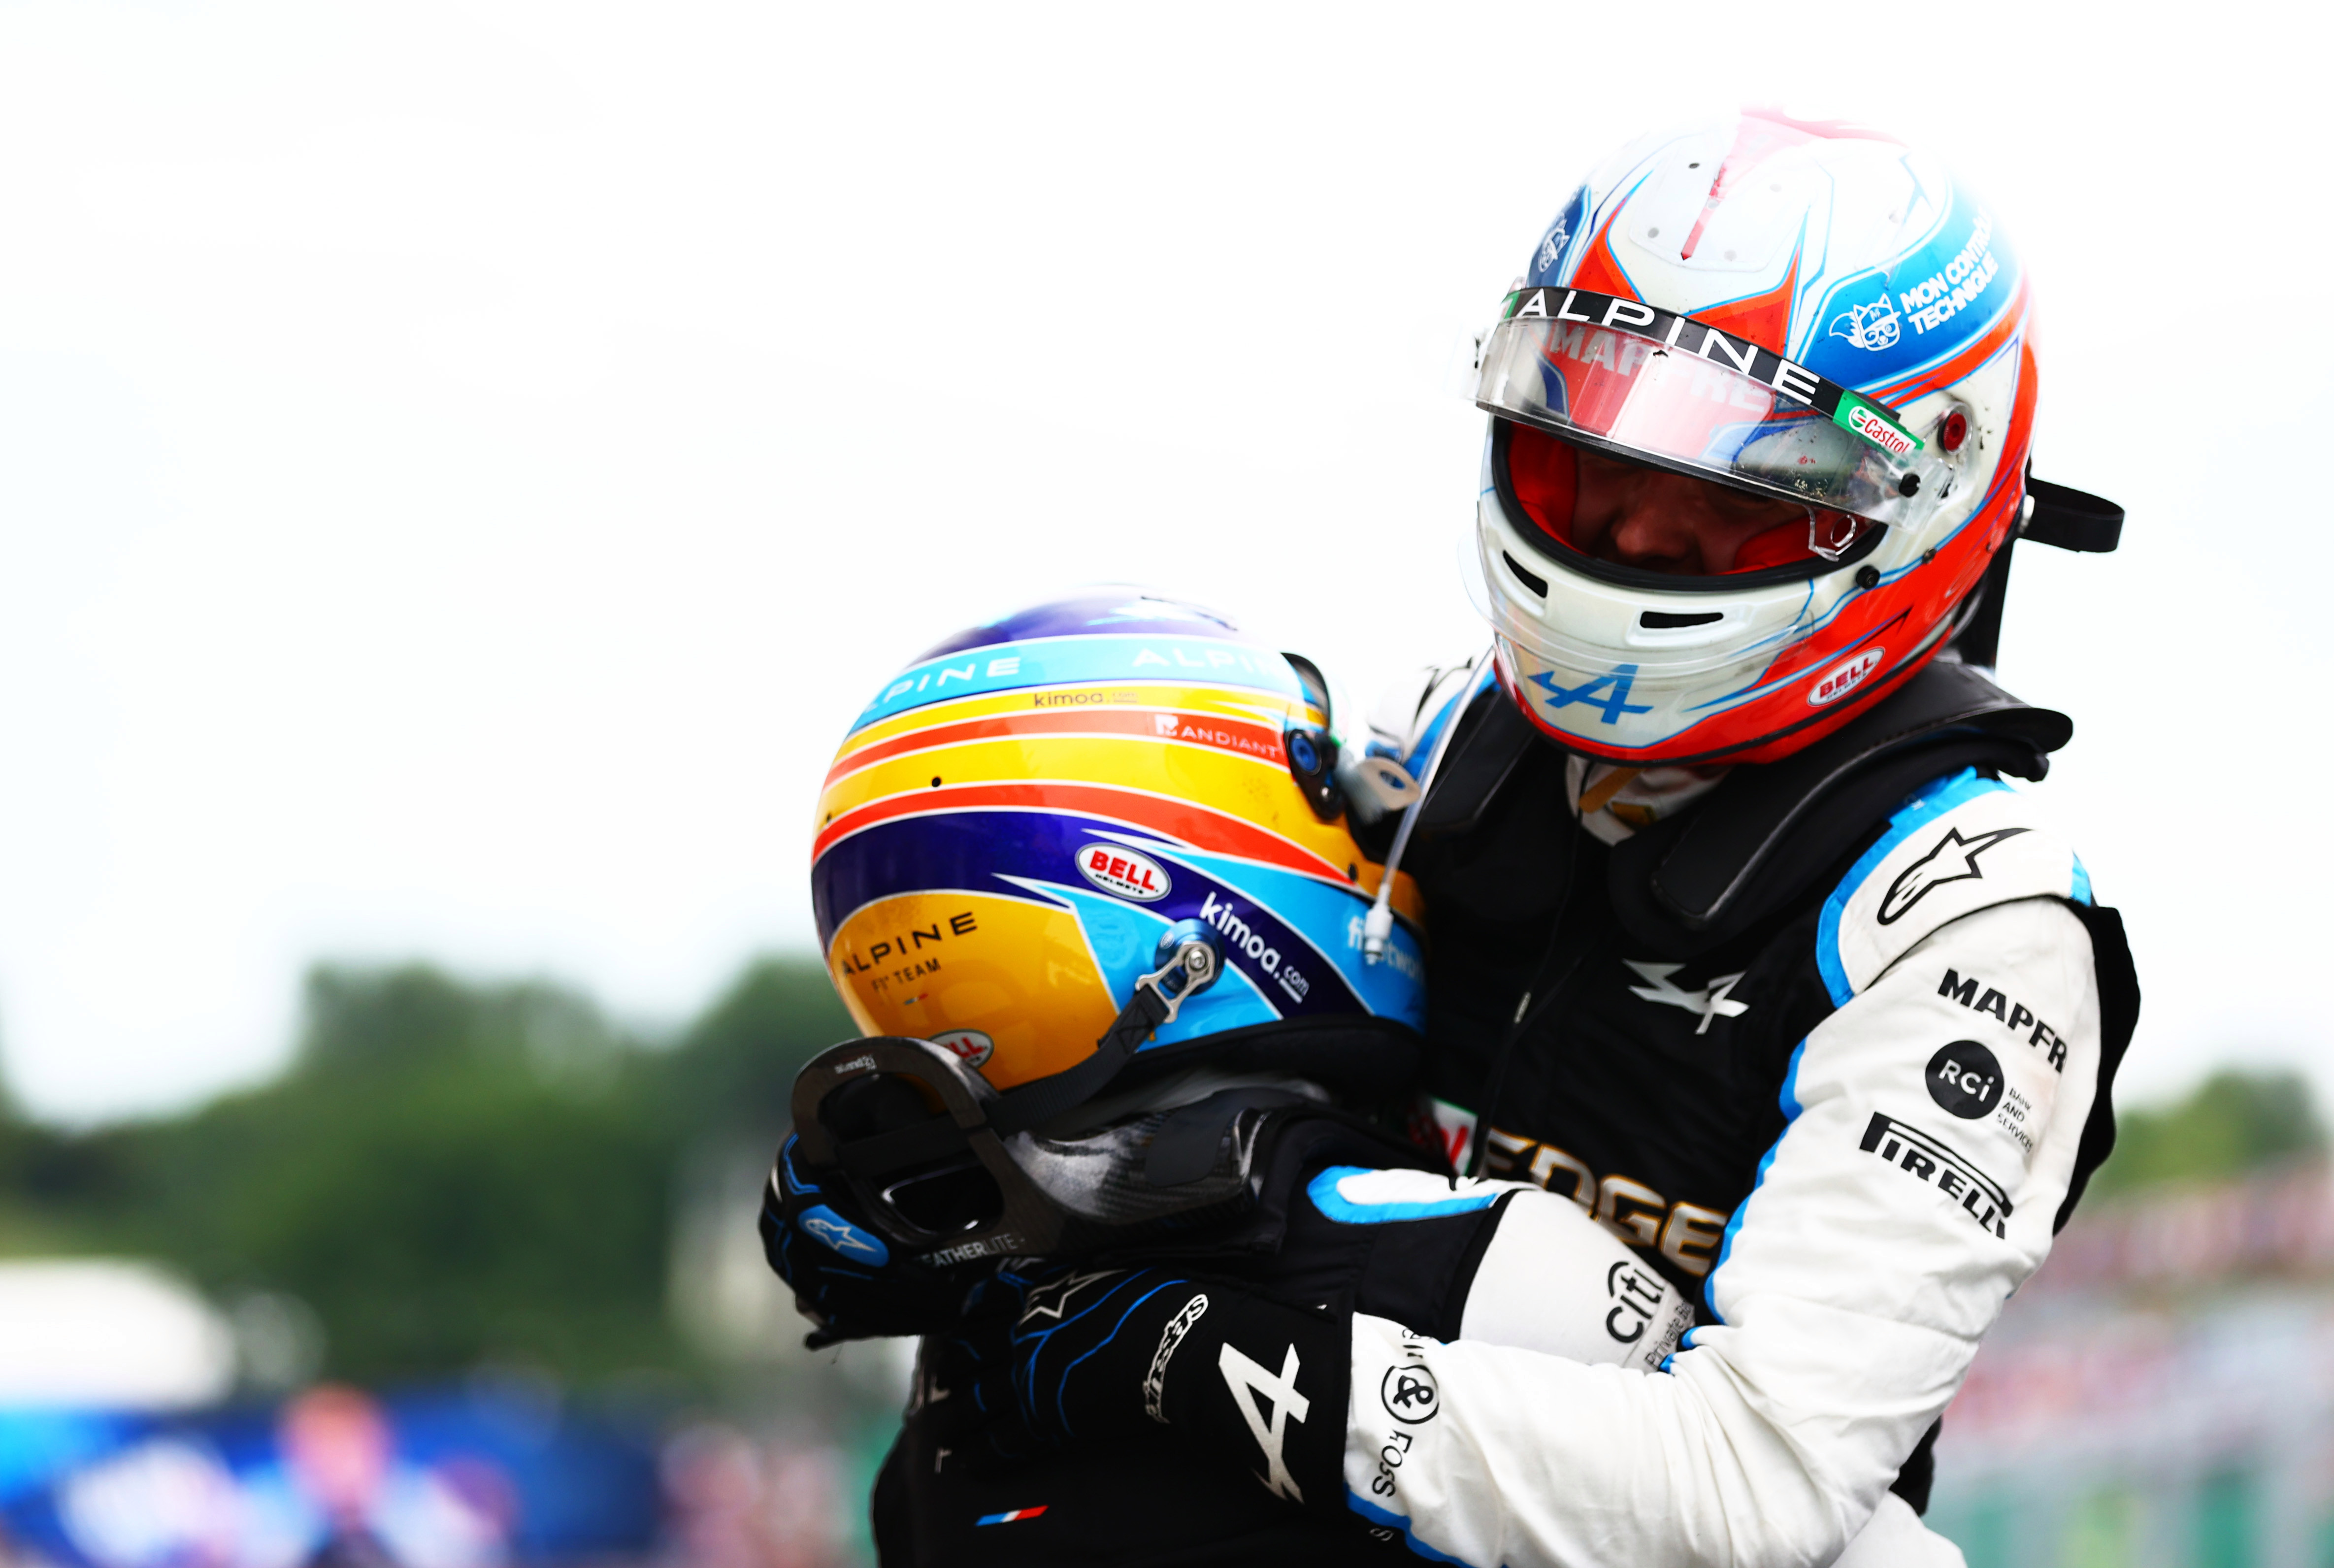 Esteban Ocon took the F1 flag but it was Fernando Alonso who sealed victory